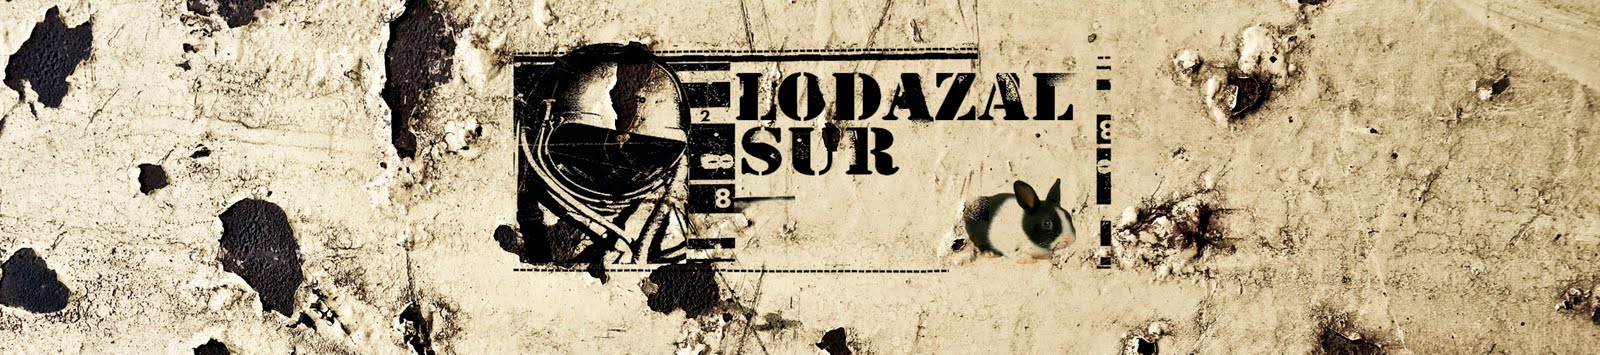 LODAZAL SUR